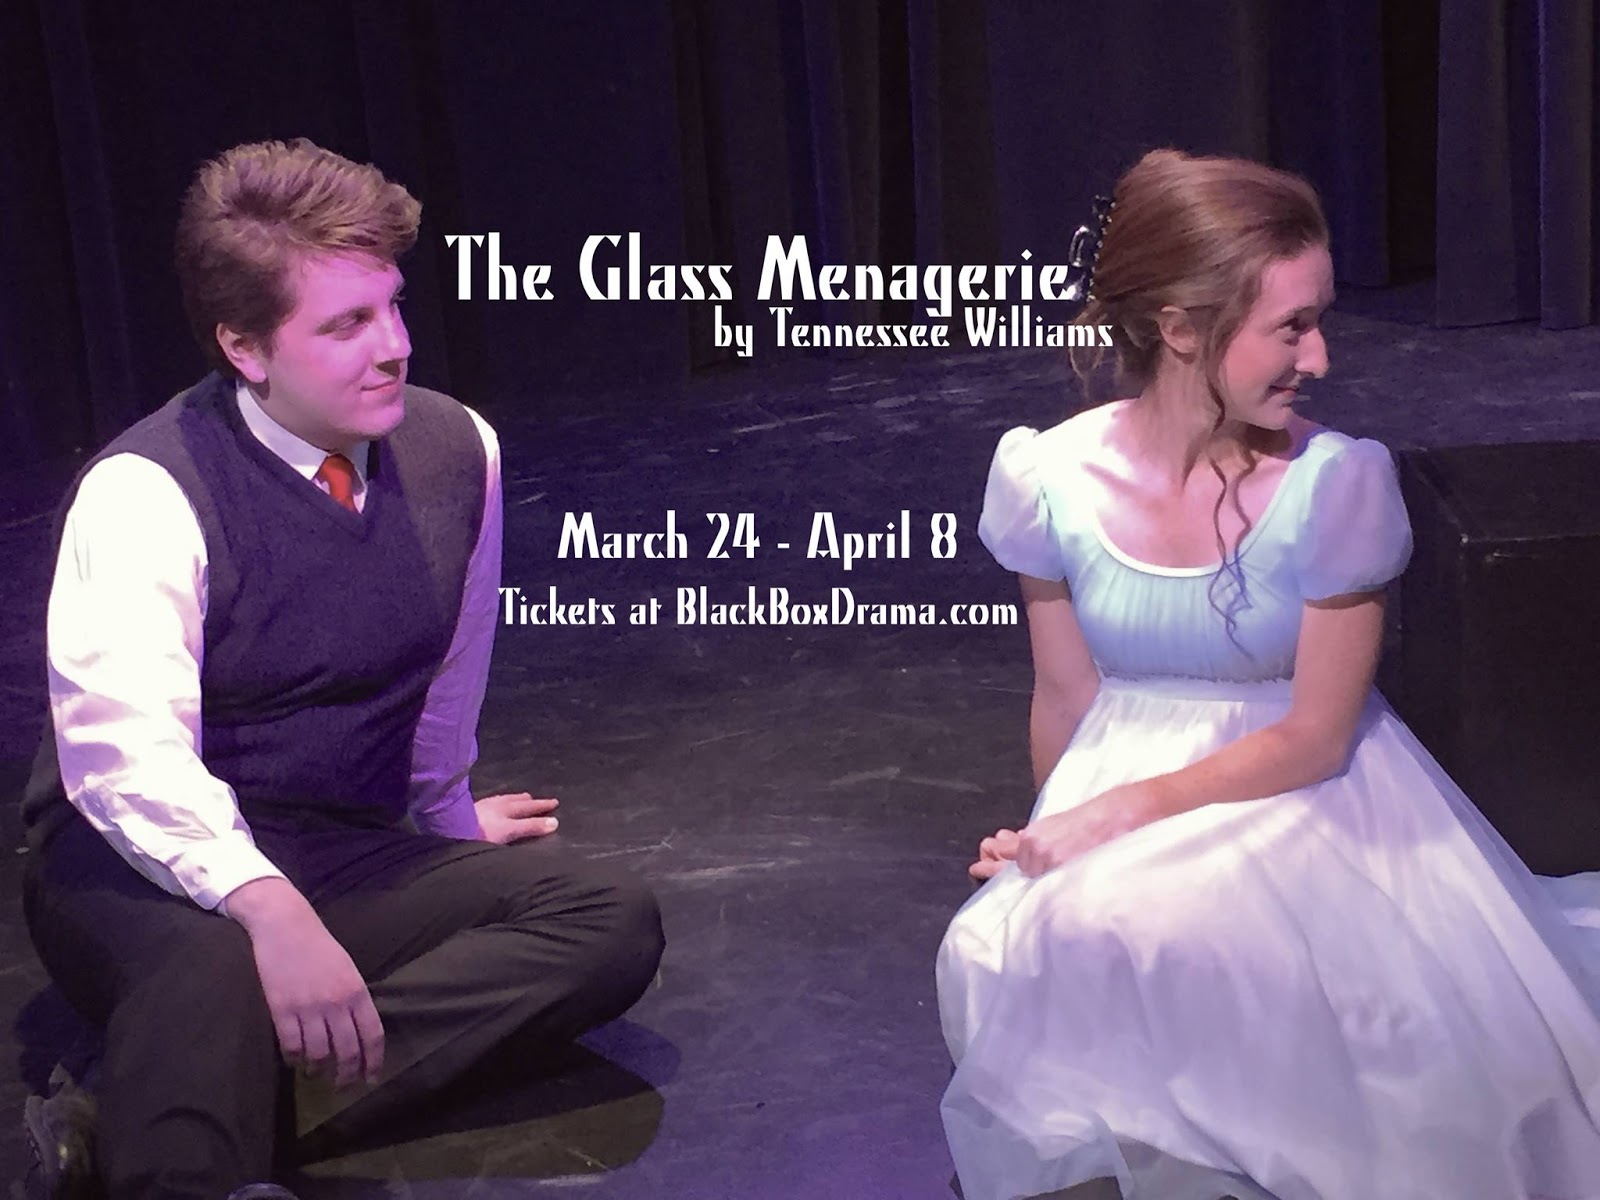 Disability, Expectations, and Disruption in The Glass Menagerie